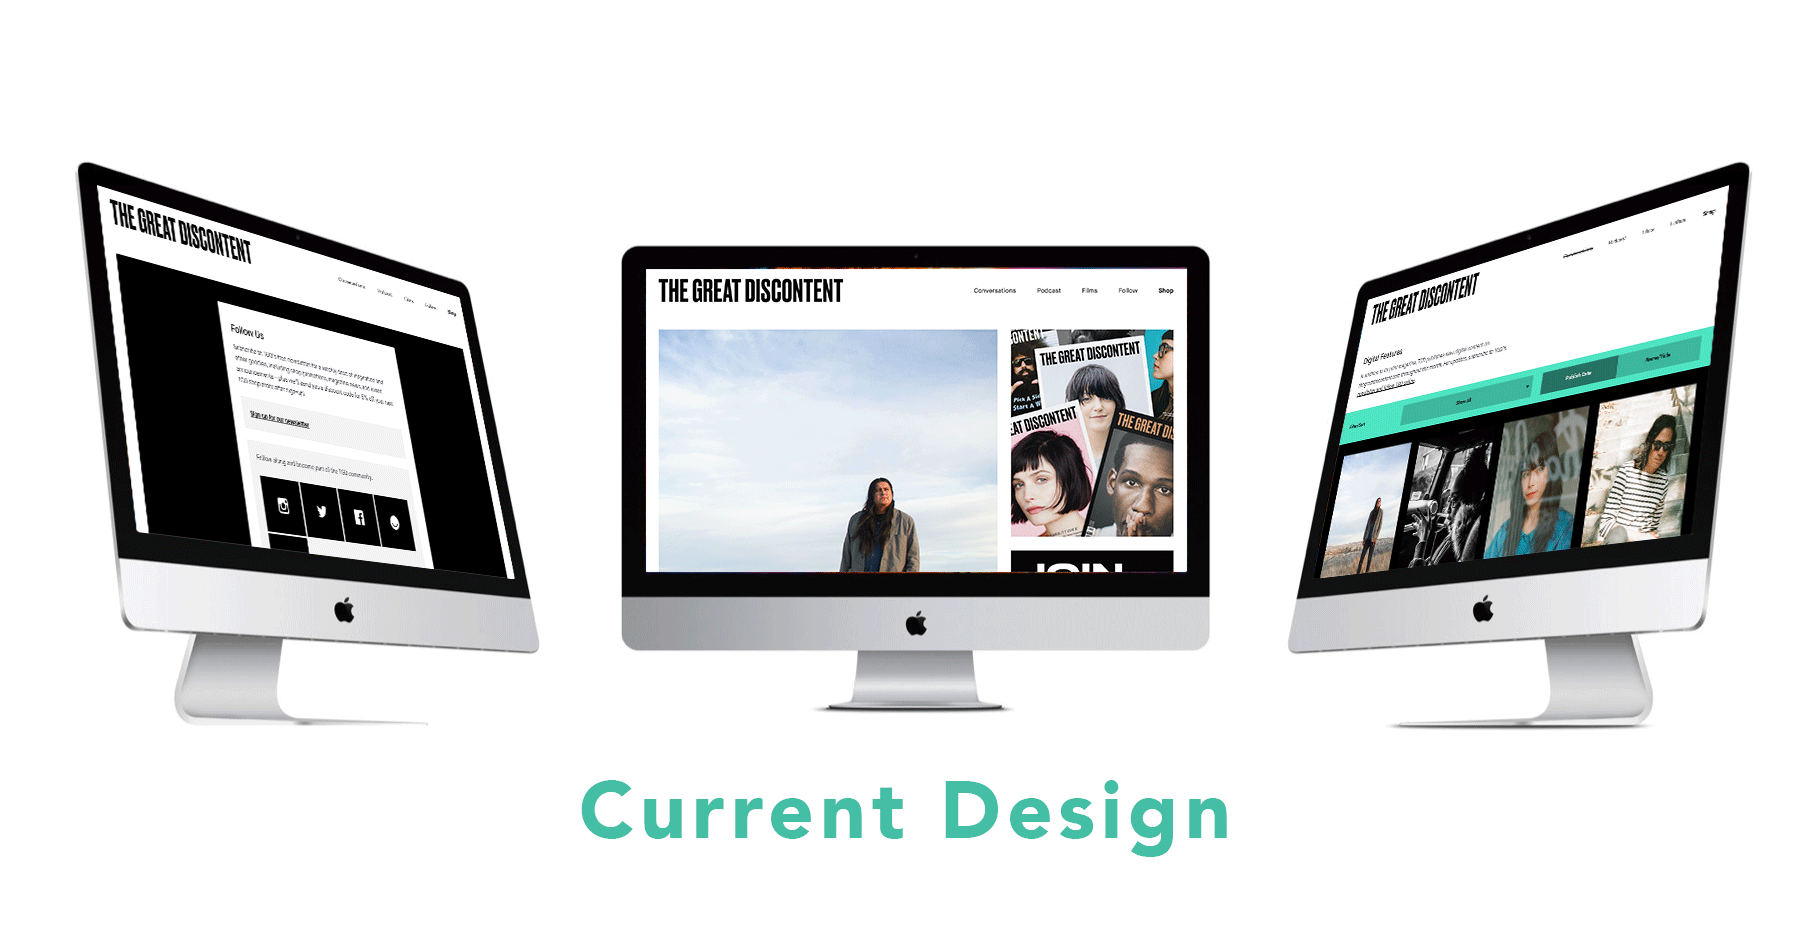 the current design of The Great Discontent's website